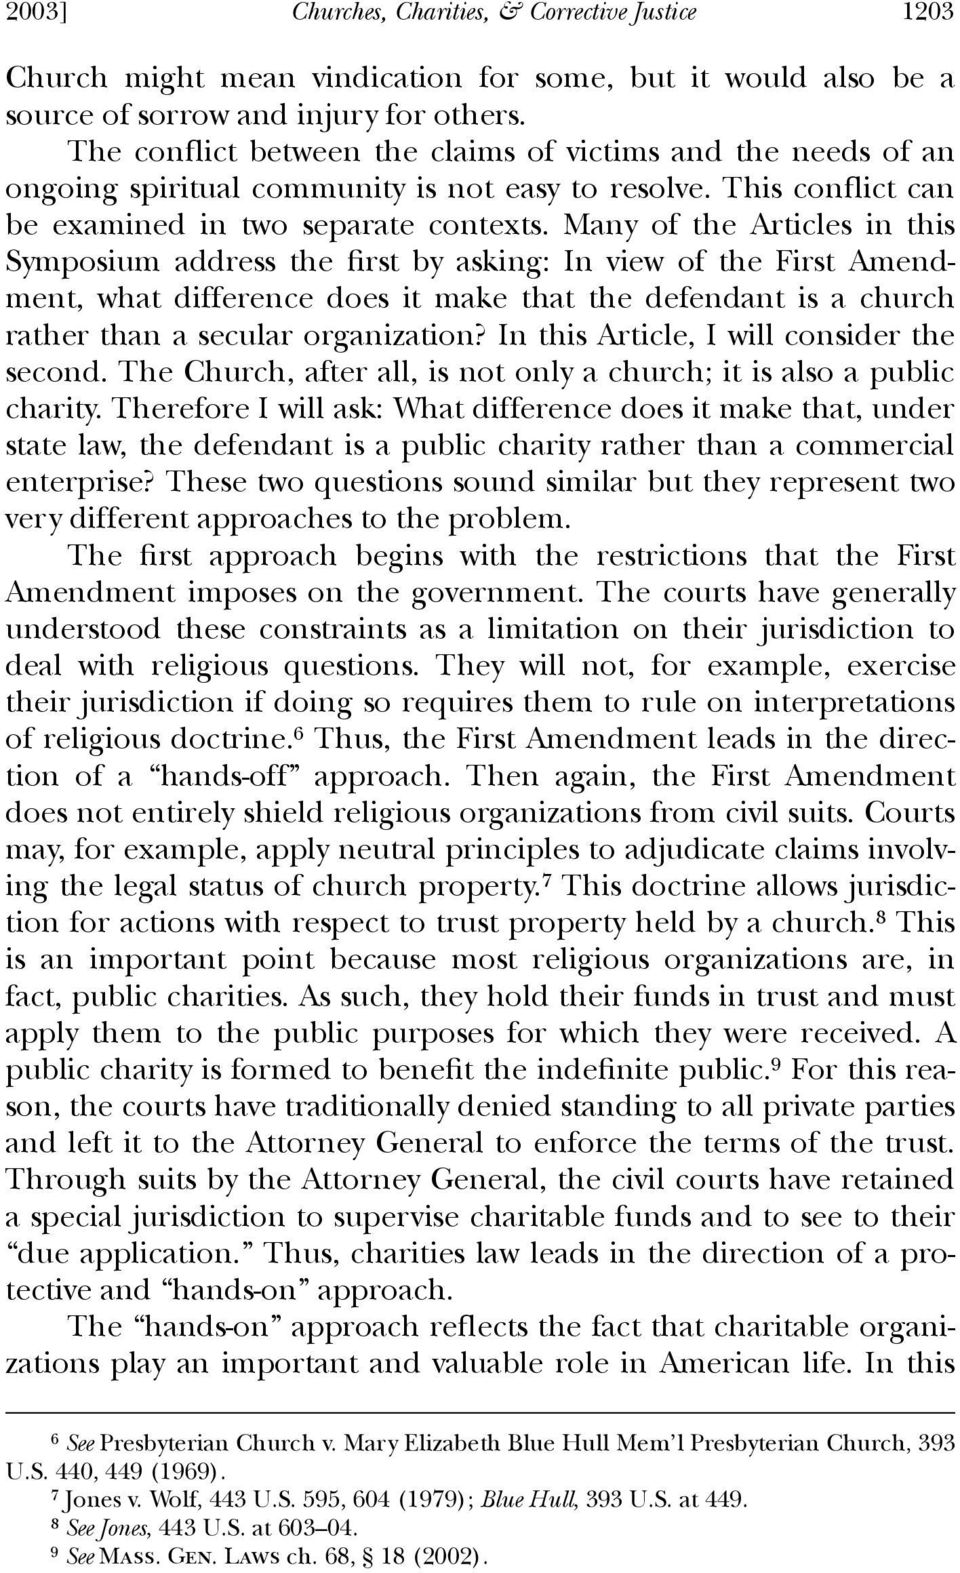 Many of the Articles in this Symposium address the ªrst by asking: In view of the First Amendment, what difference does it make that the defendant is a church rather than a secular organization?